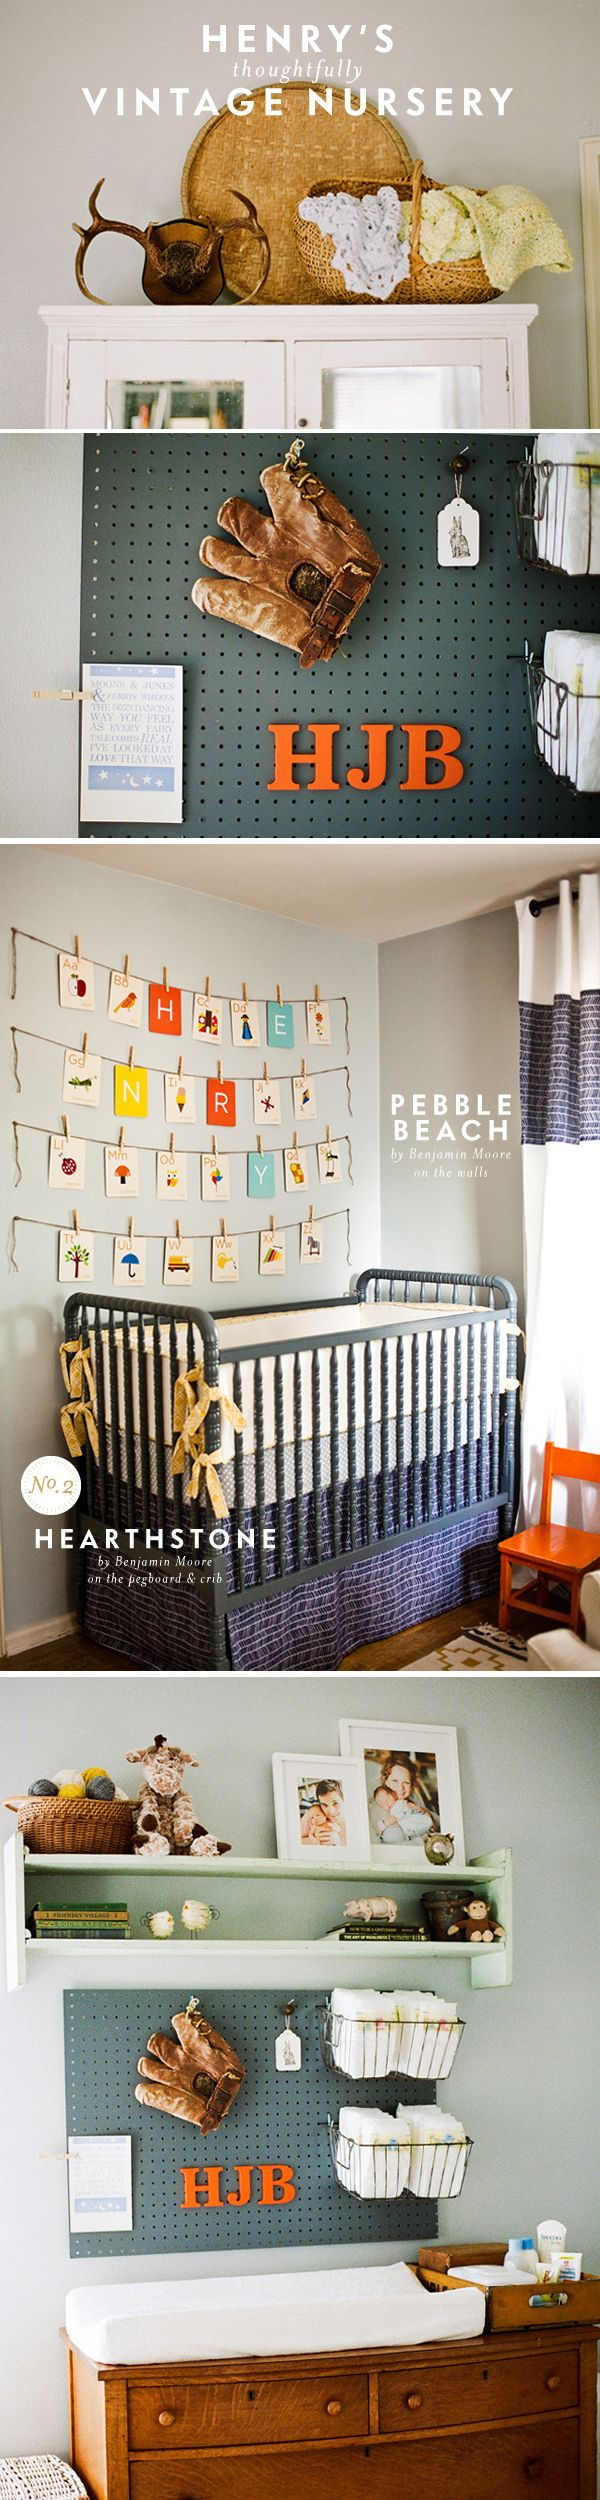 henry's vintage baby nursery inspiration - I love the pegboard changing station area, and all the great details. Good think I'm still doing Sawyer's room.